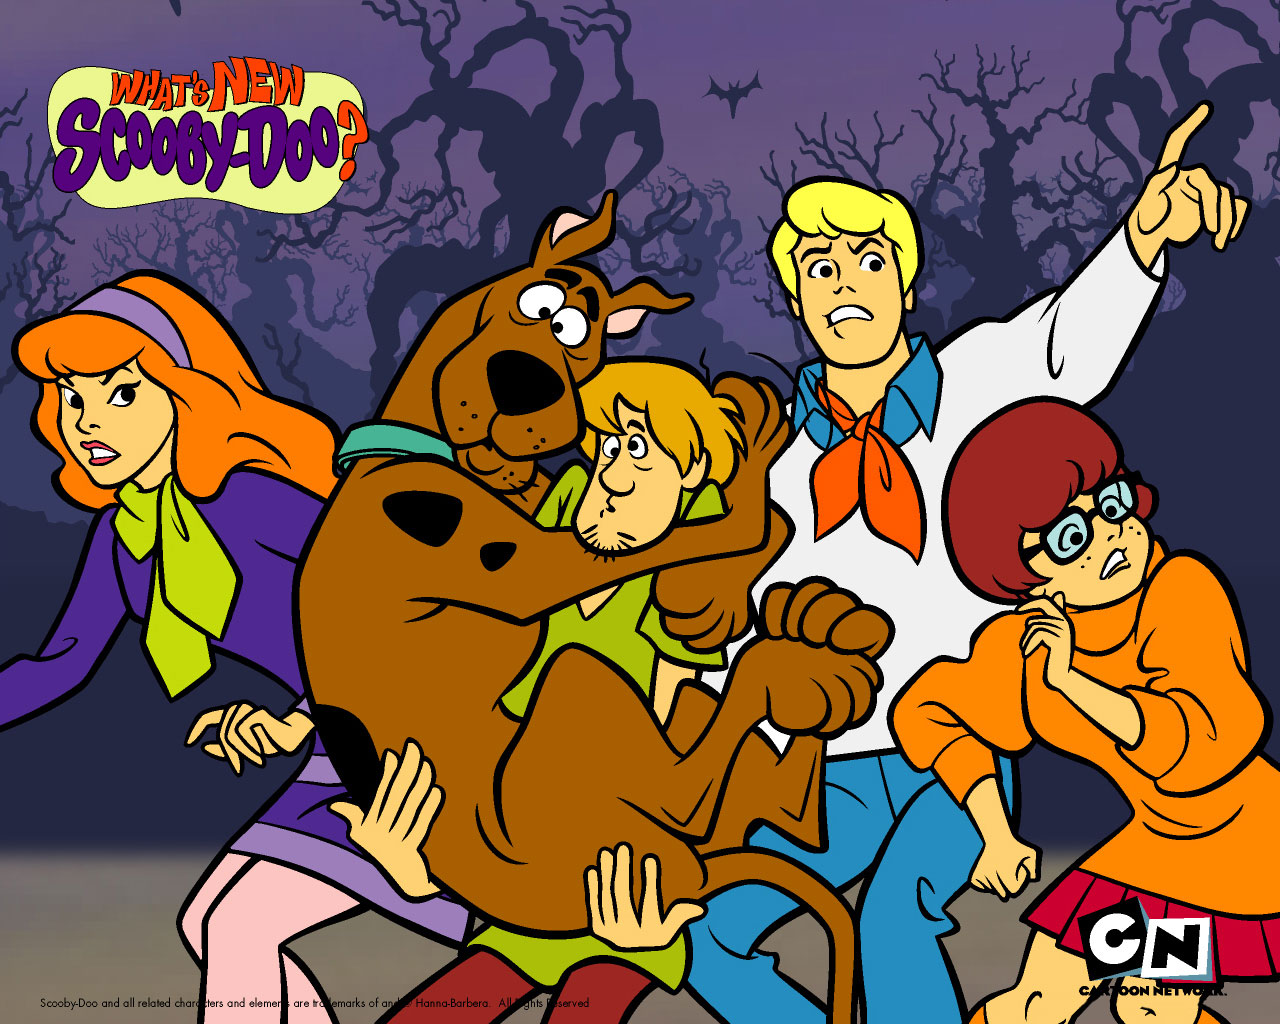 ... scooby doo wallpaper 7 scooby doo cartoon scooby doo wallpaper 8